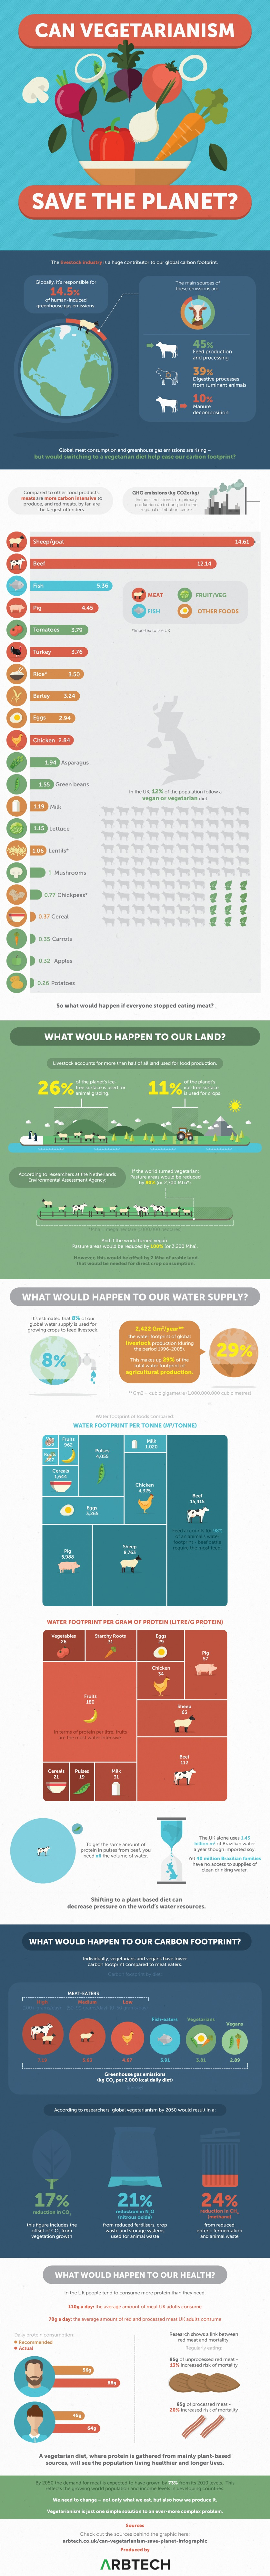 an Vegetarianism Save the Planet Infographic